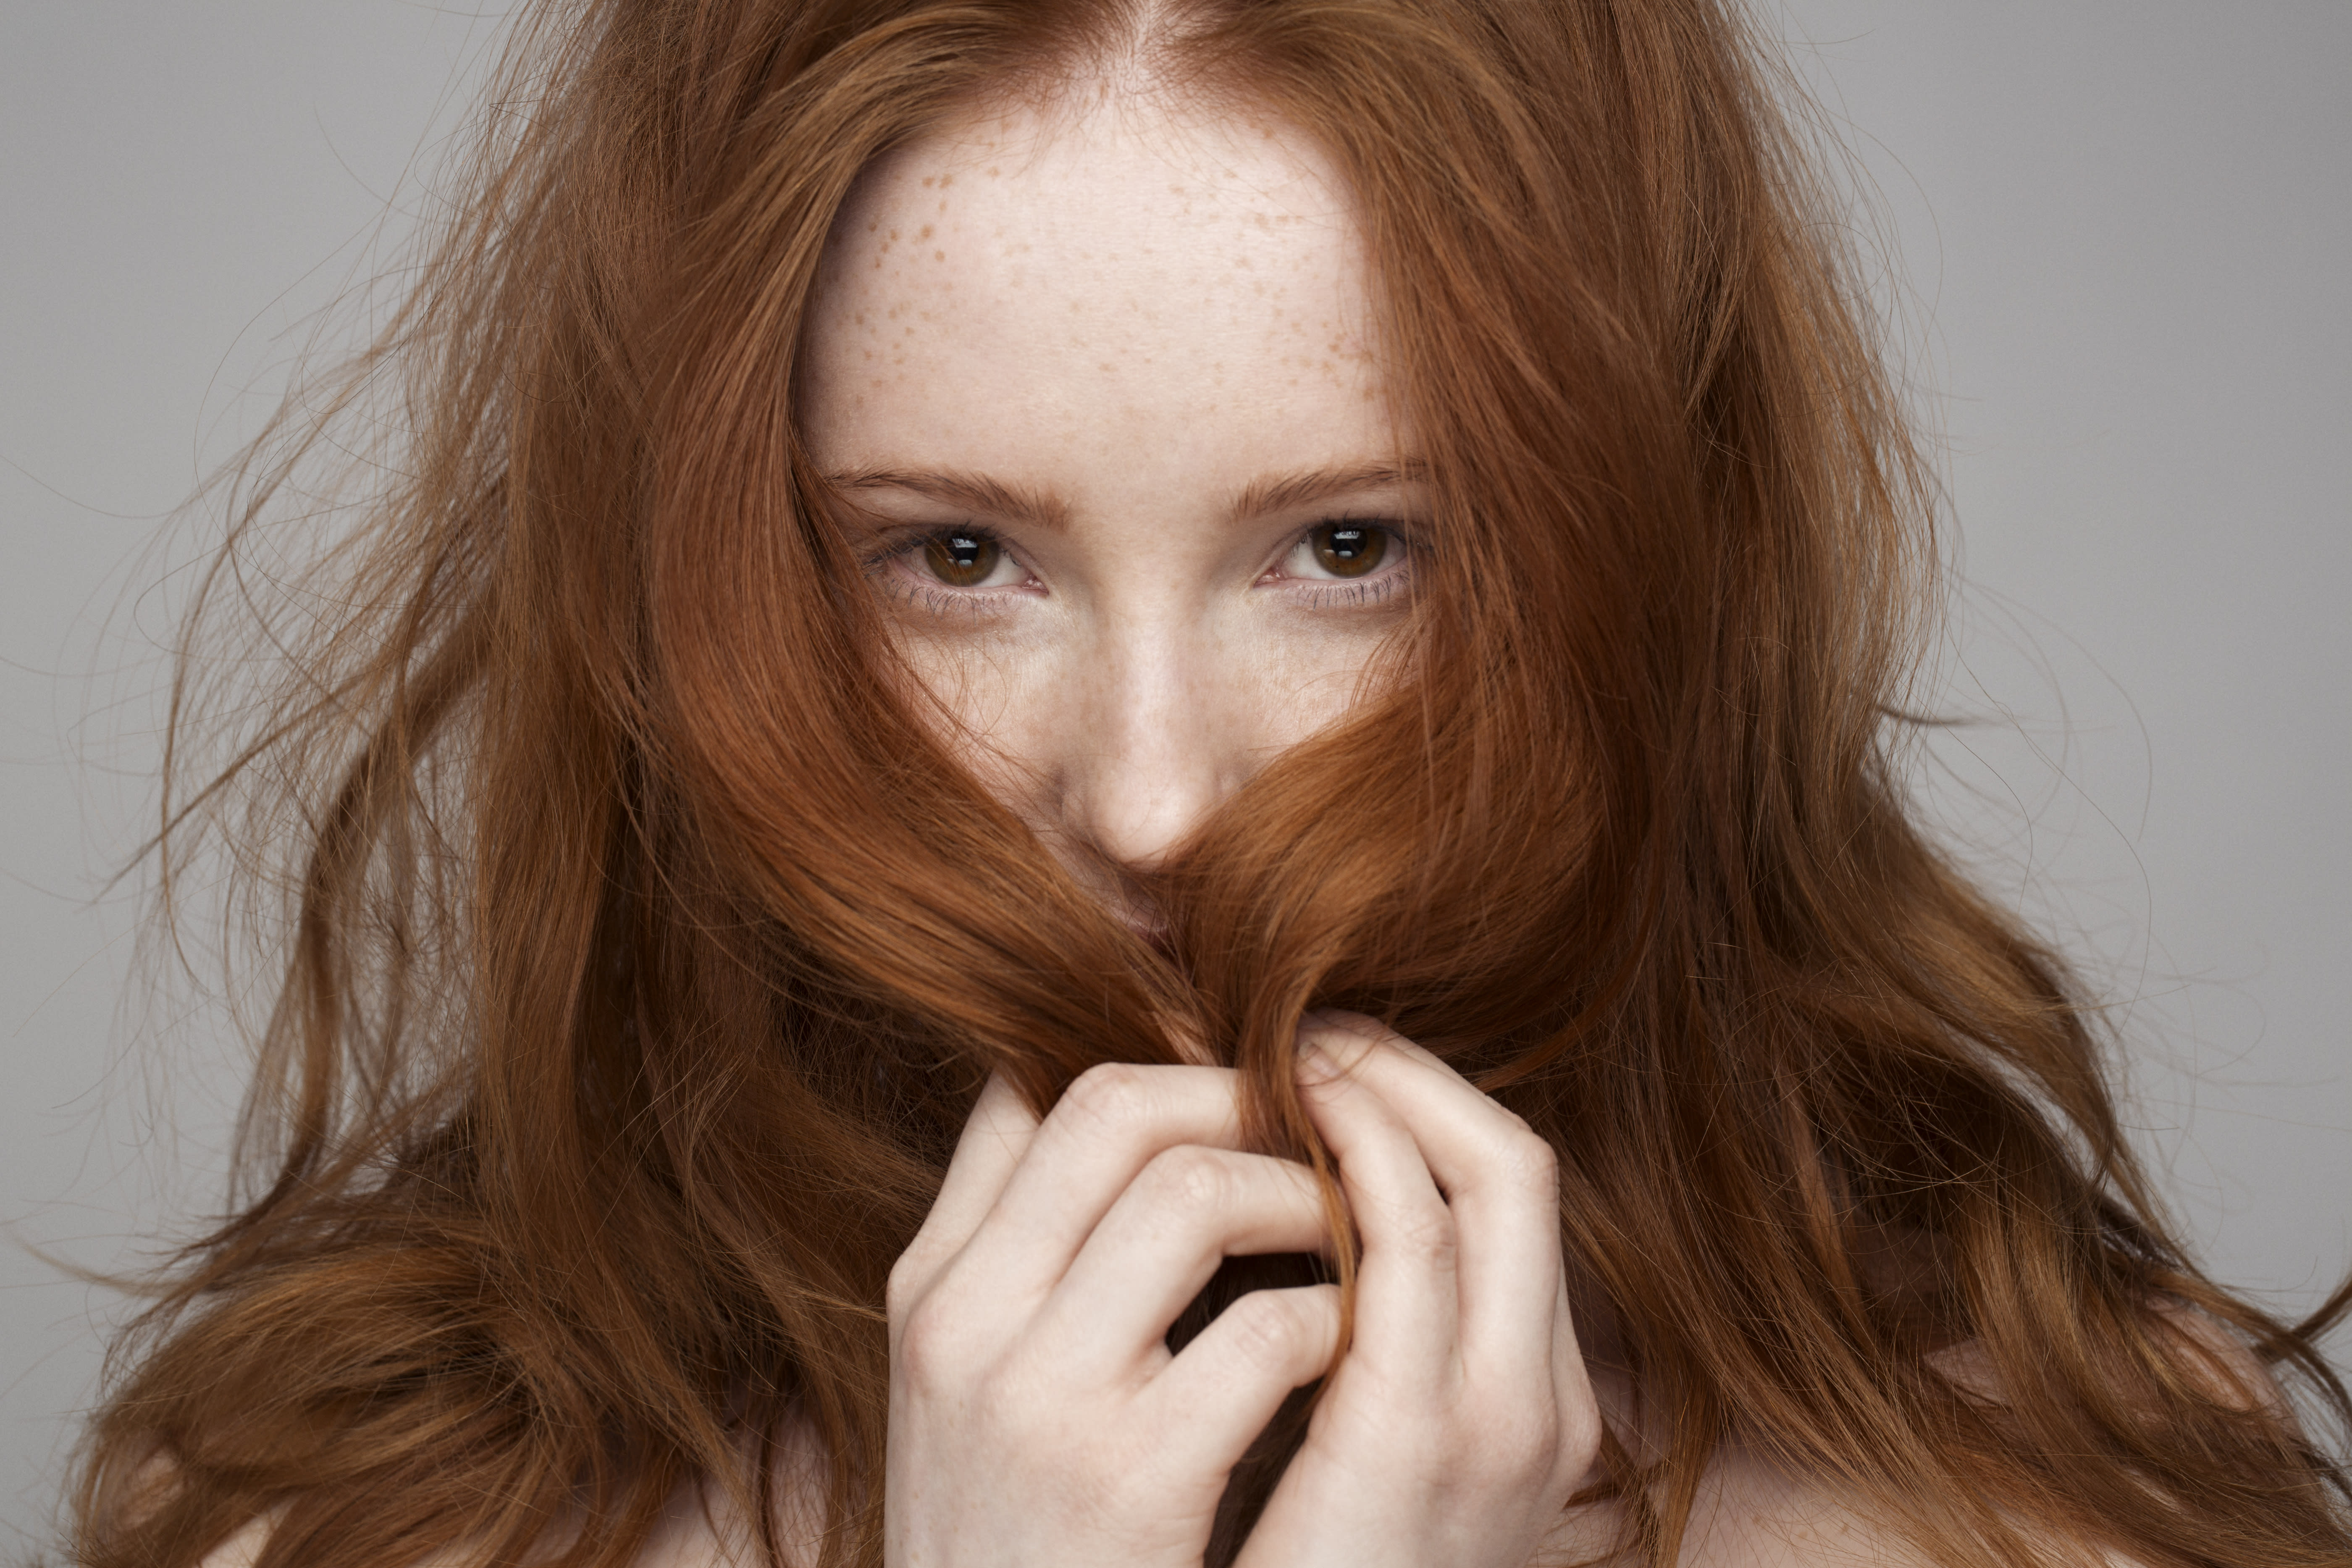 Rusty Yaks Racist Ad Targeting Red Heads Gets Banned In Australia Rusty Yaks Racist Ad Targeting Red Heads Gets Banned In Australia new pics